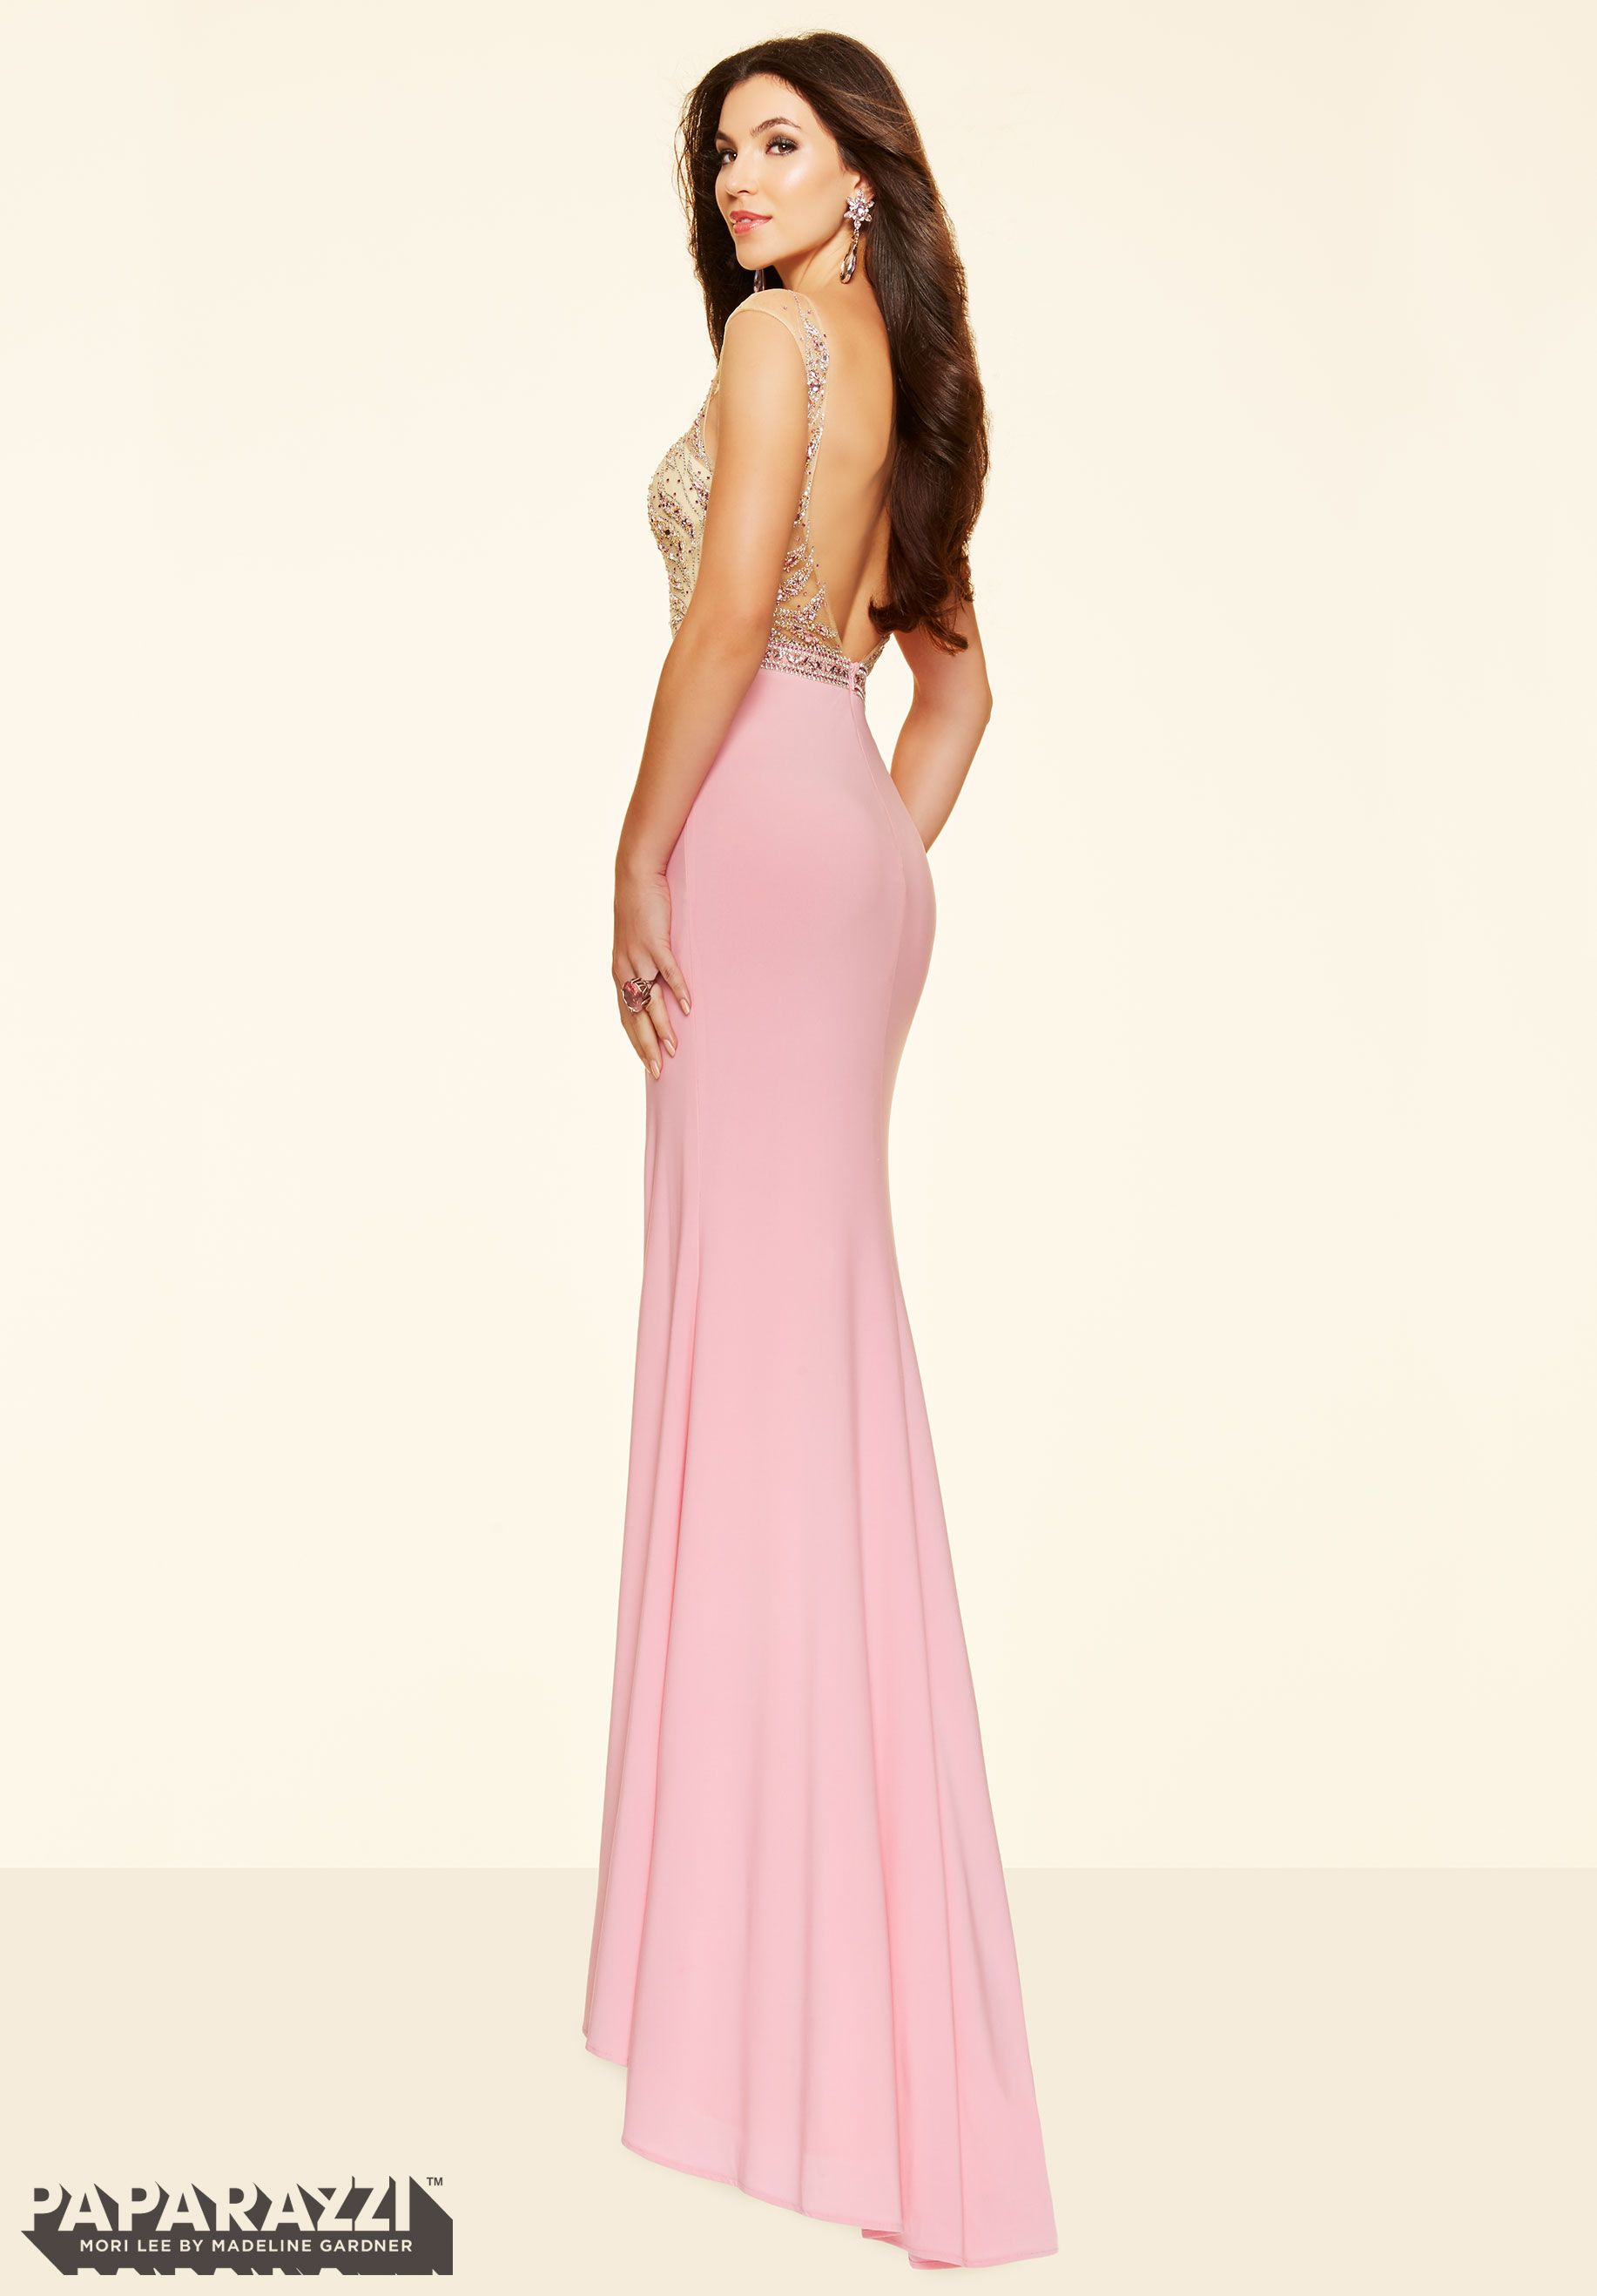 Prom Dresses by Paparazzi Prom - Dress Style 98102   PROM ...